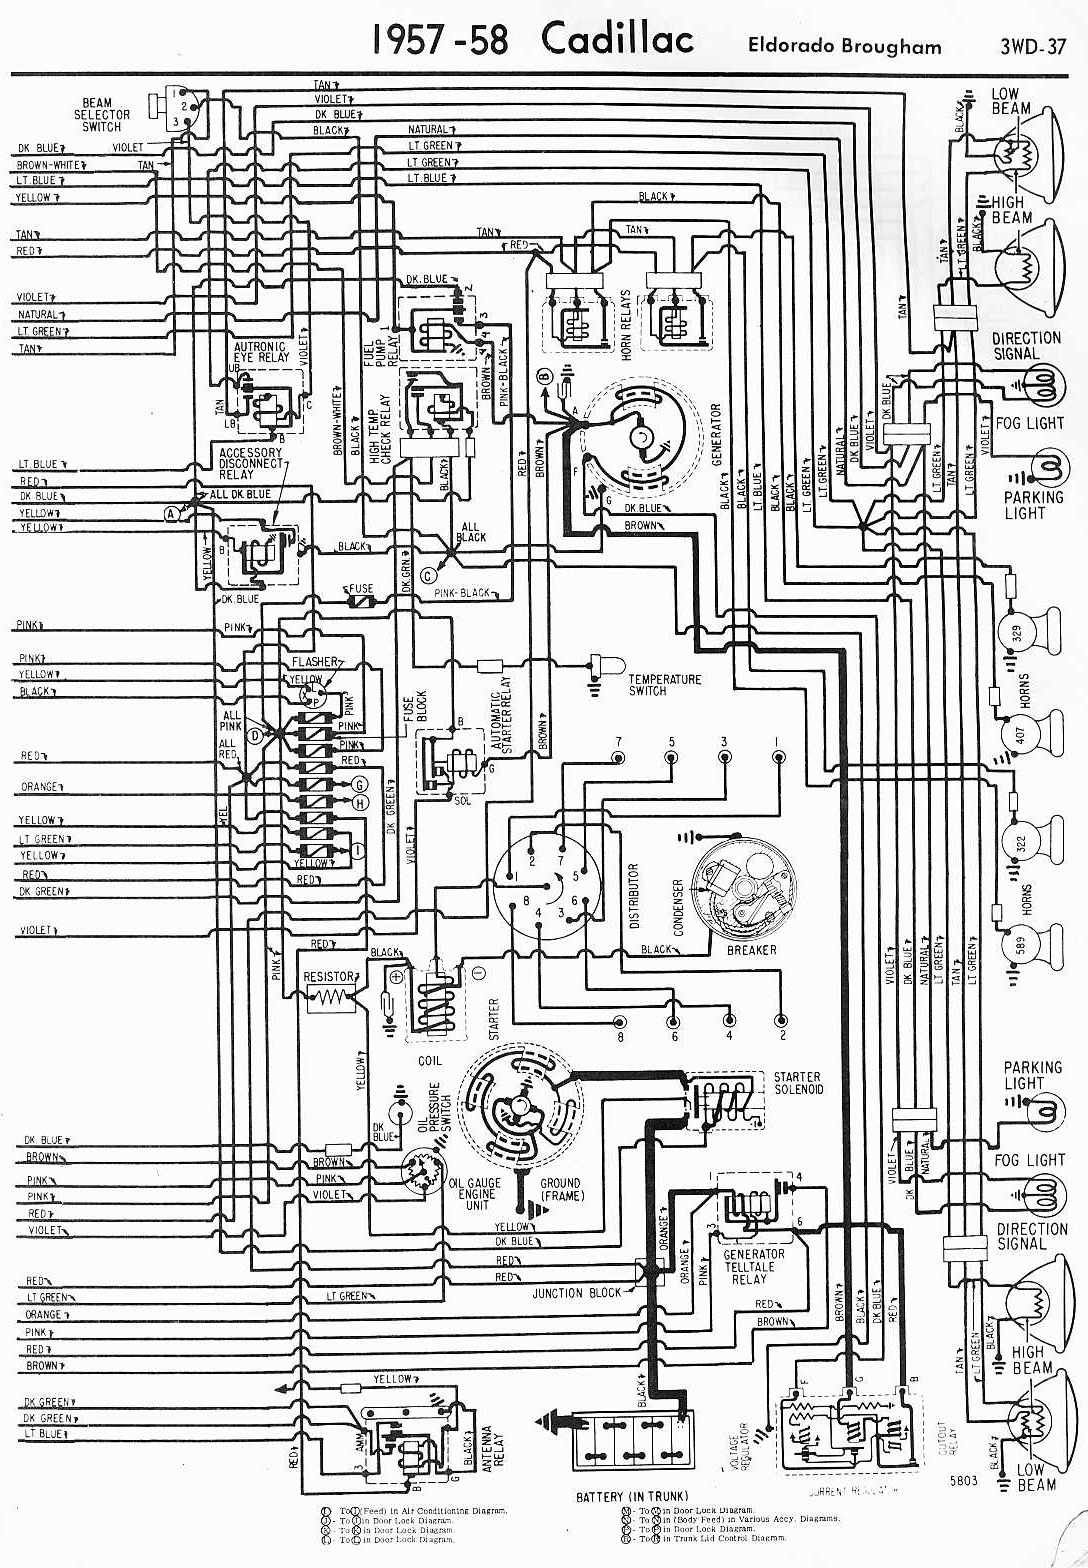 1975 Cadillac Wiring Diagram Trusted 1971 Headlights Eldorado Download Diagrams U2022 1953